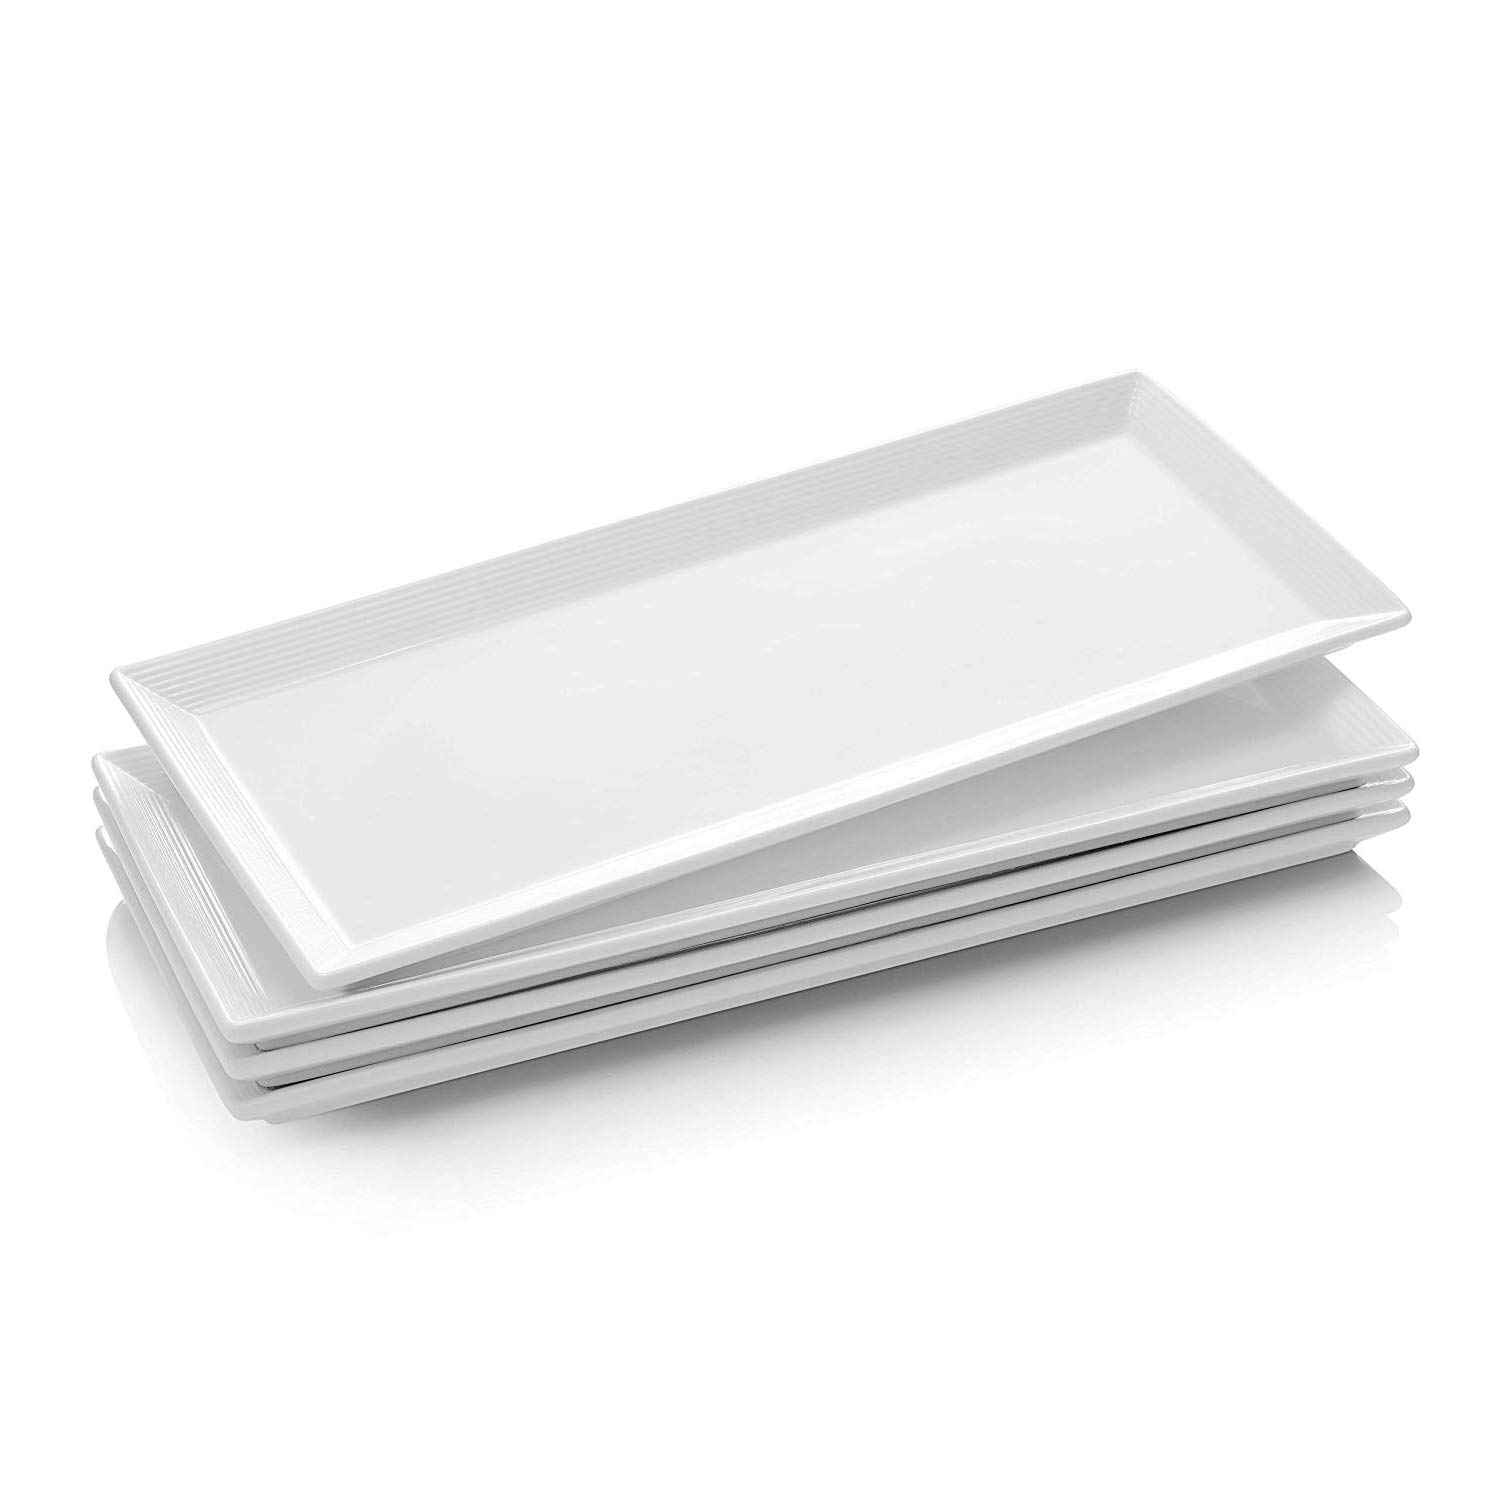 DOWAN 14.5-inch Porcelain Serving Platters/Rectangular Plates - 4 Packs, Natural White …